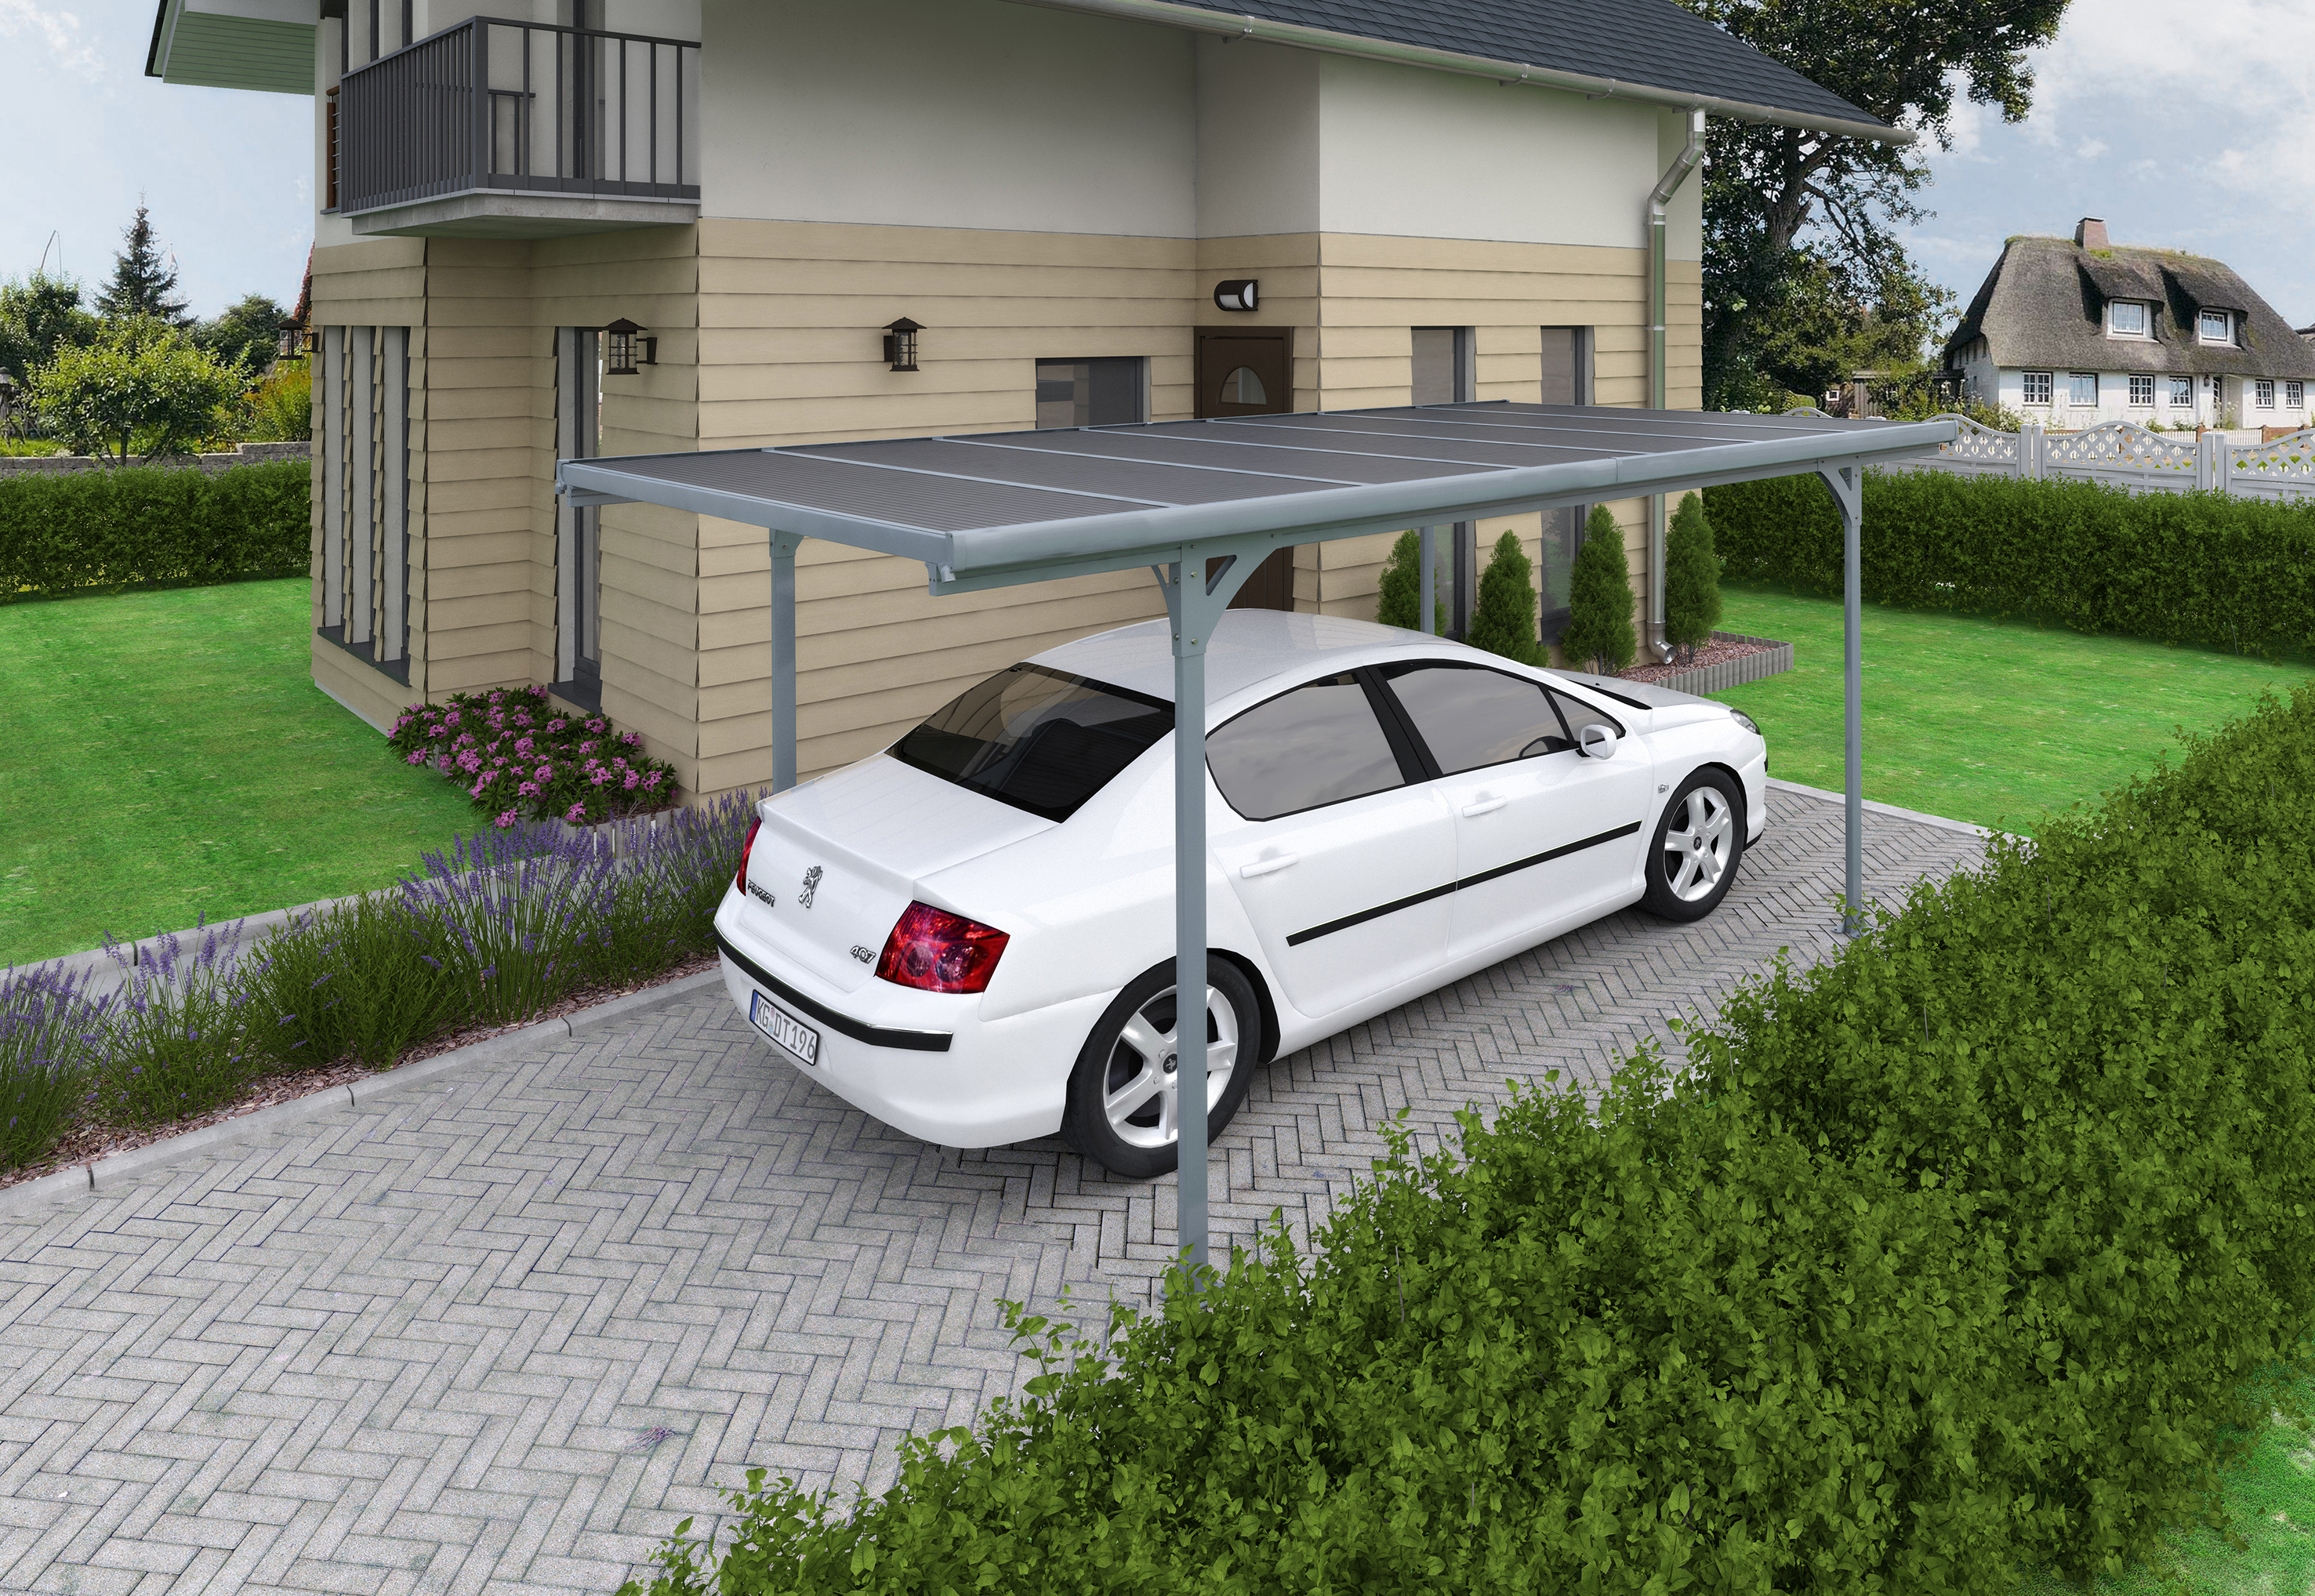 Superb Brico Depot Carport Voiture #5: 7310_verona_03.jpg